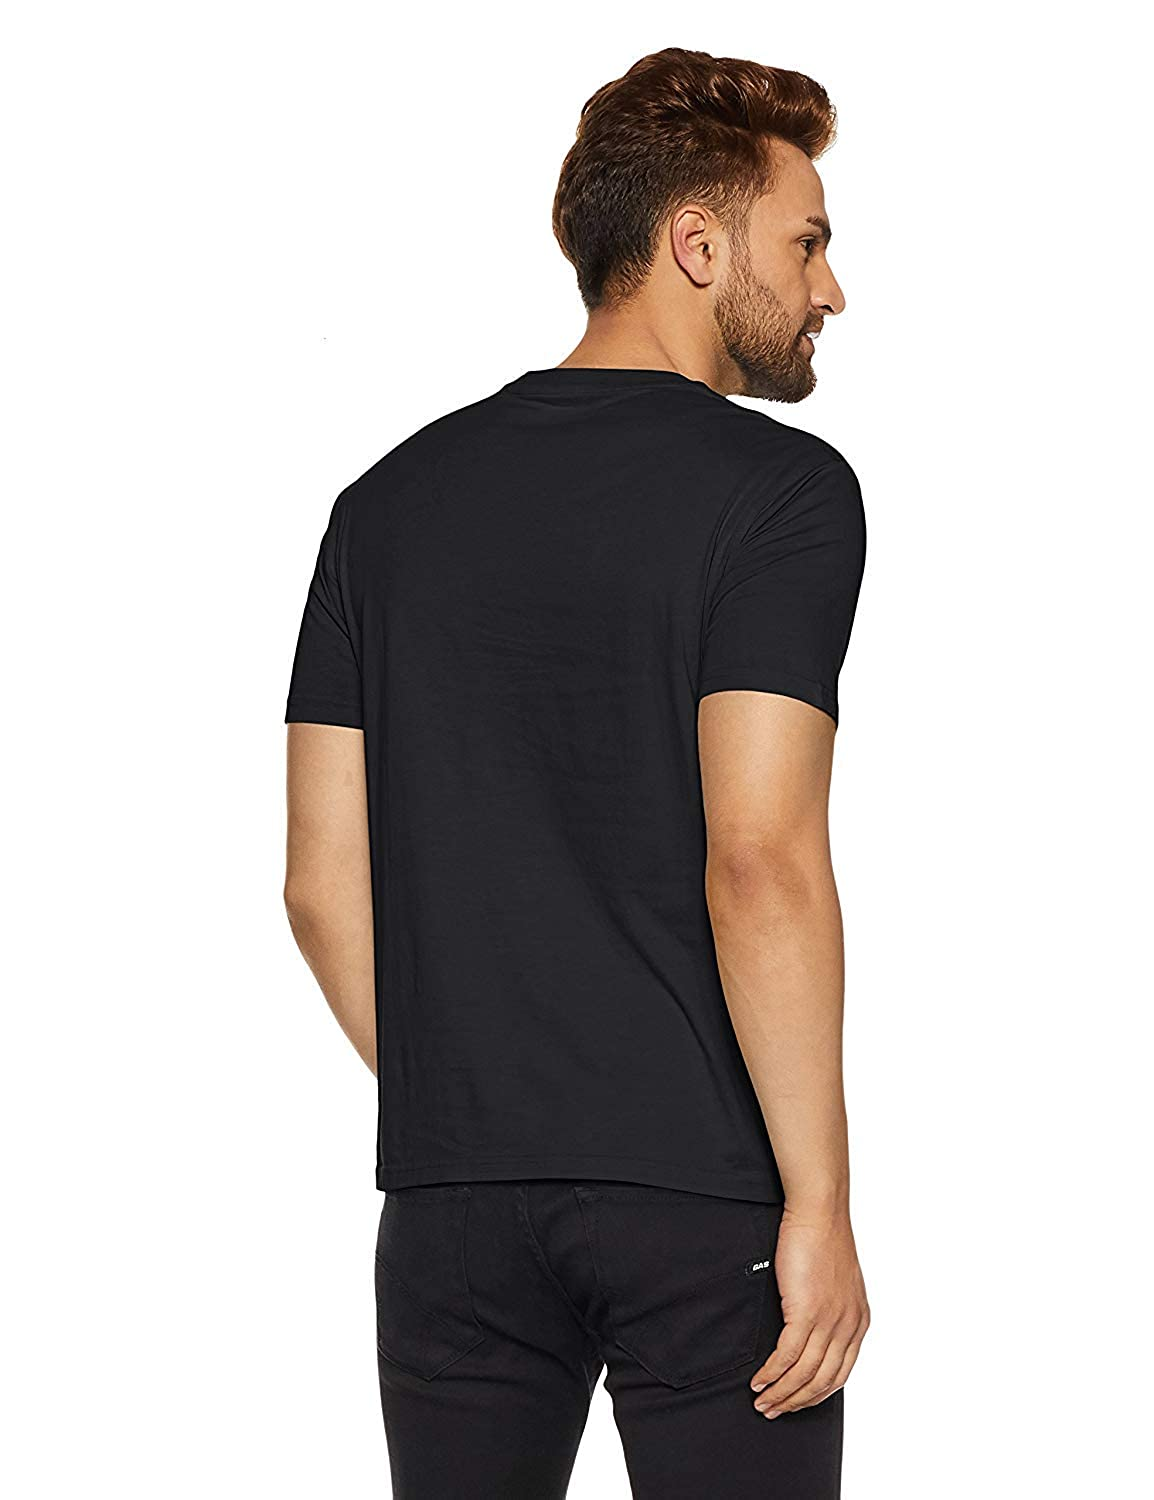 872283284f5 iShoppe Plain Basic T-Shirt for Men